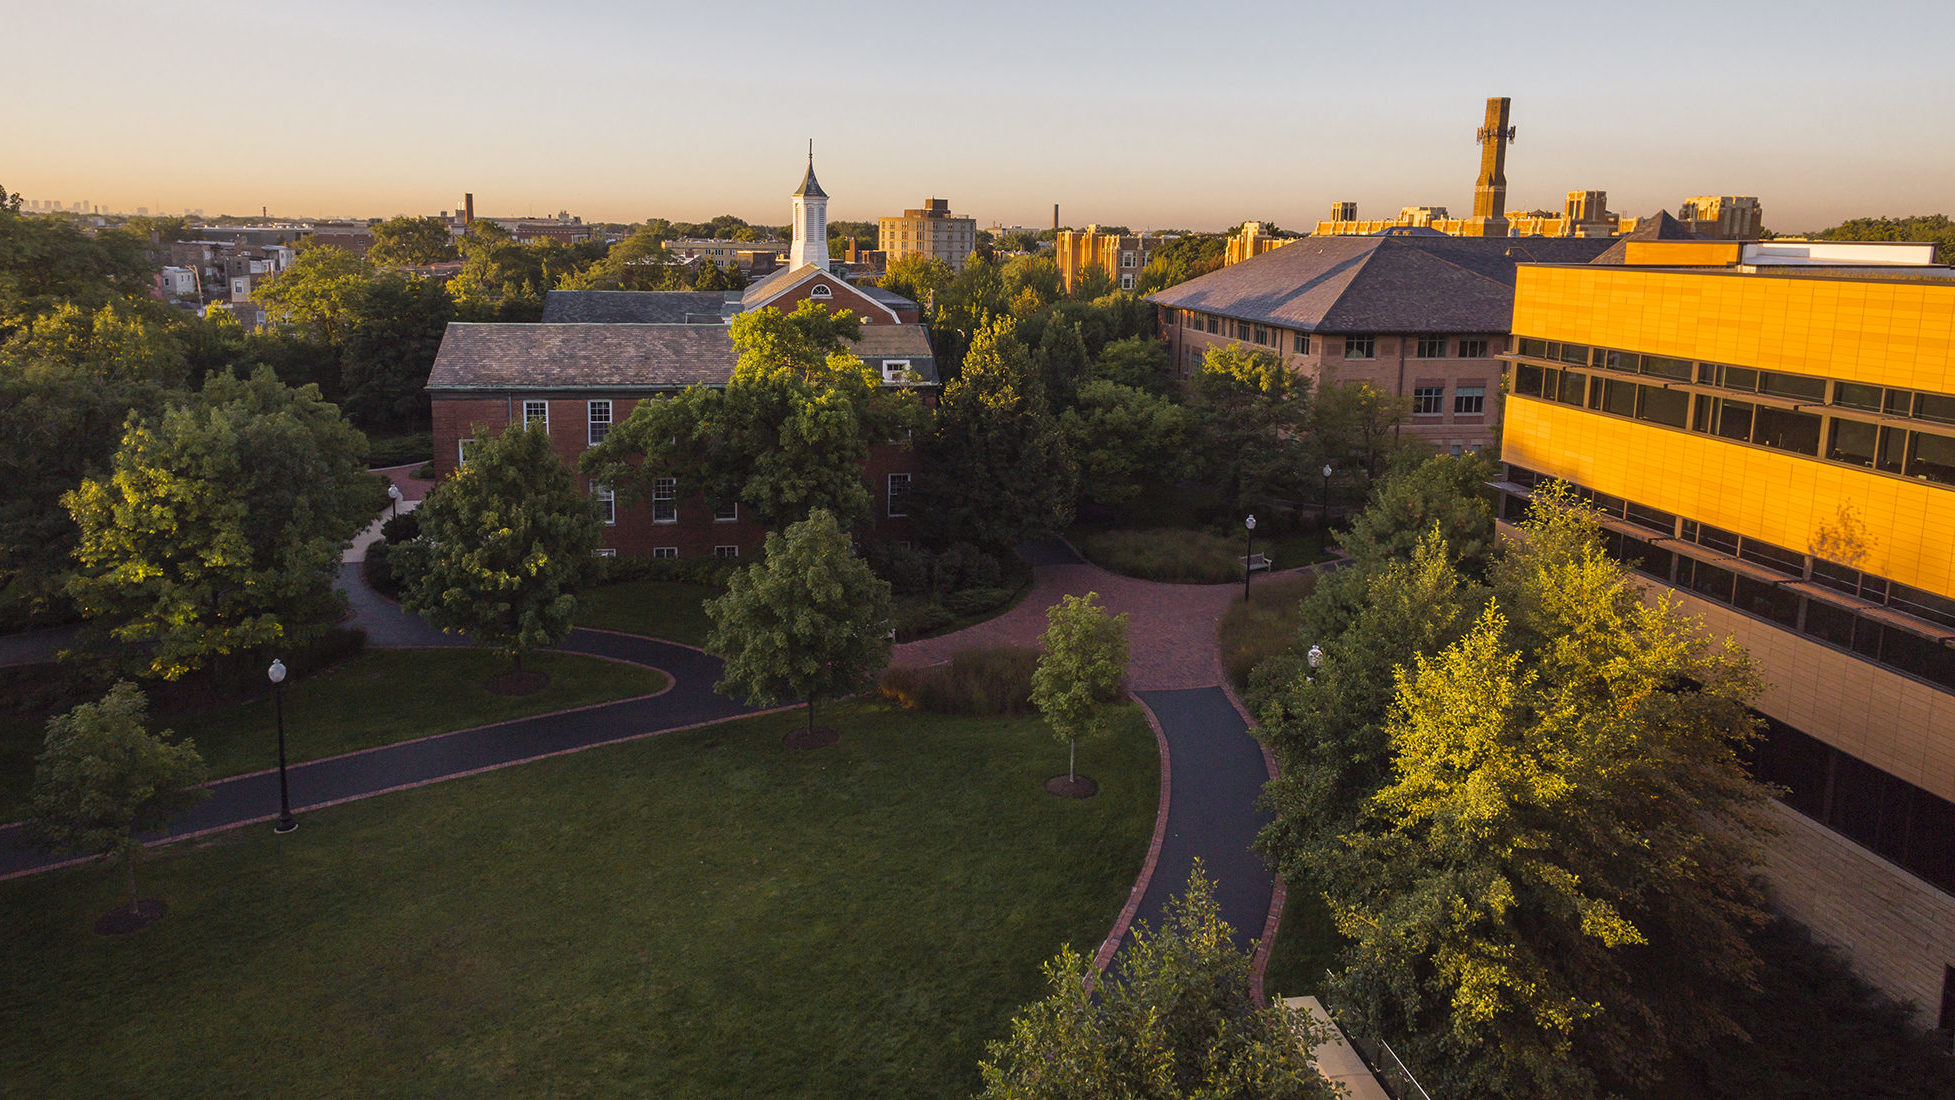 Aerial view of North Park Campus, overlooking greenspace, walkways, and seminary building steeple.